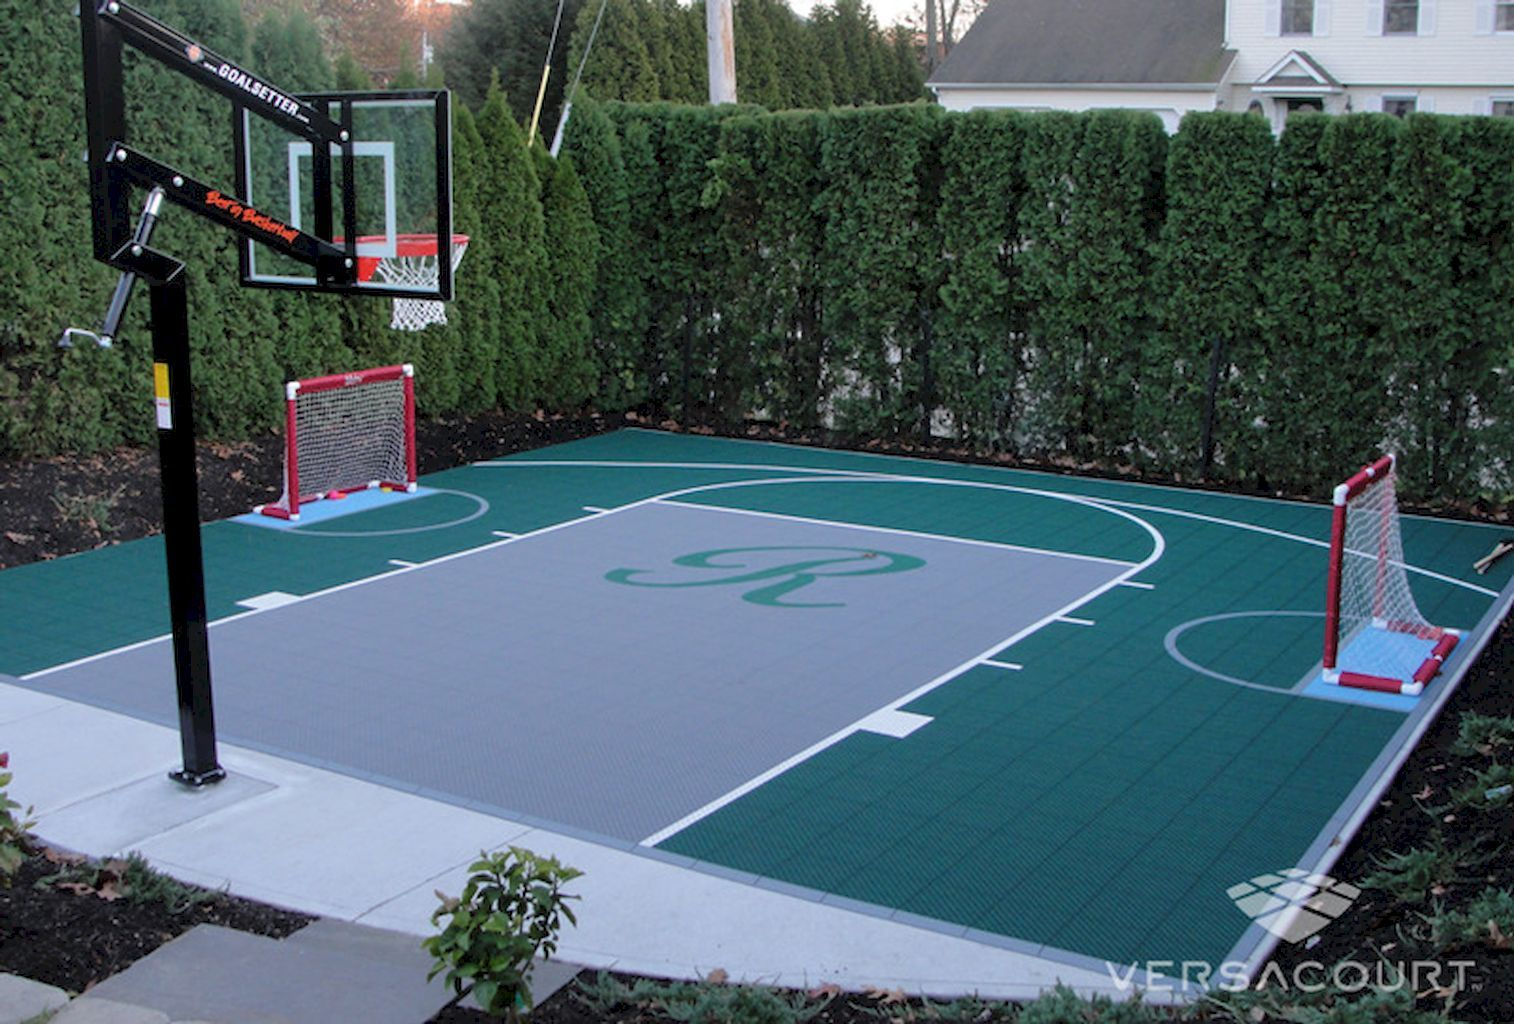 25.SIMPHOME.COM sport court backyard design ideas court backyard basketball